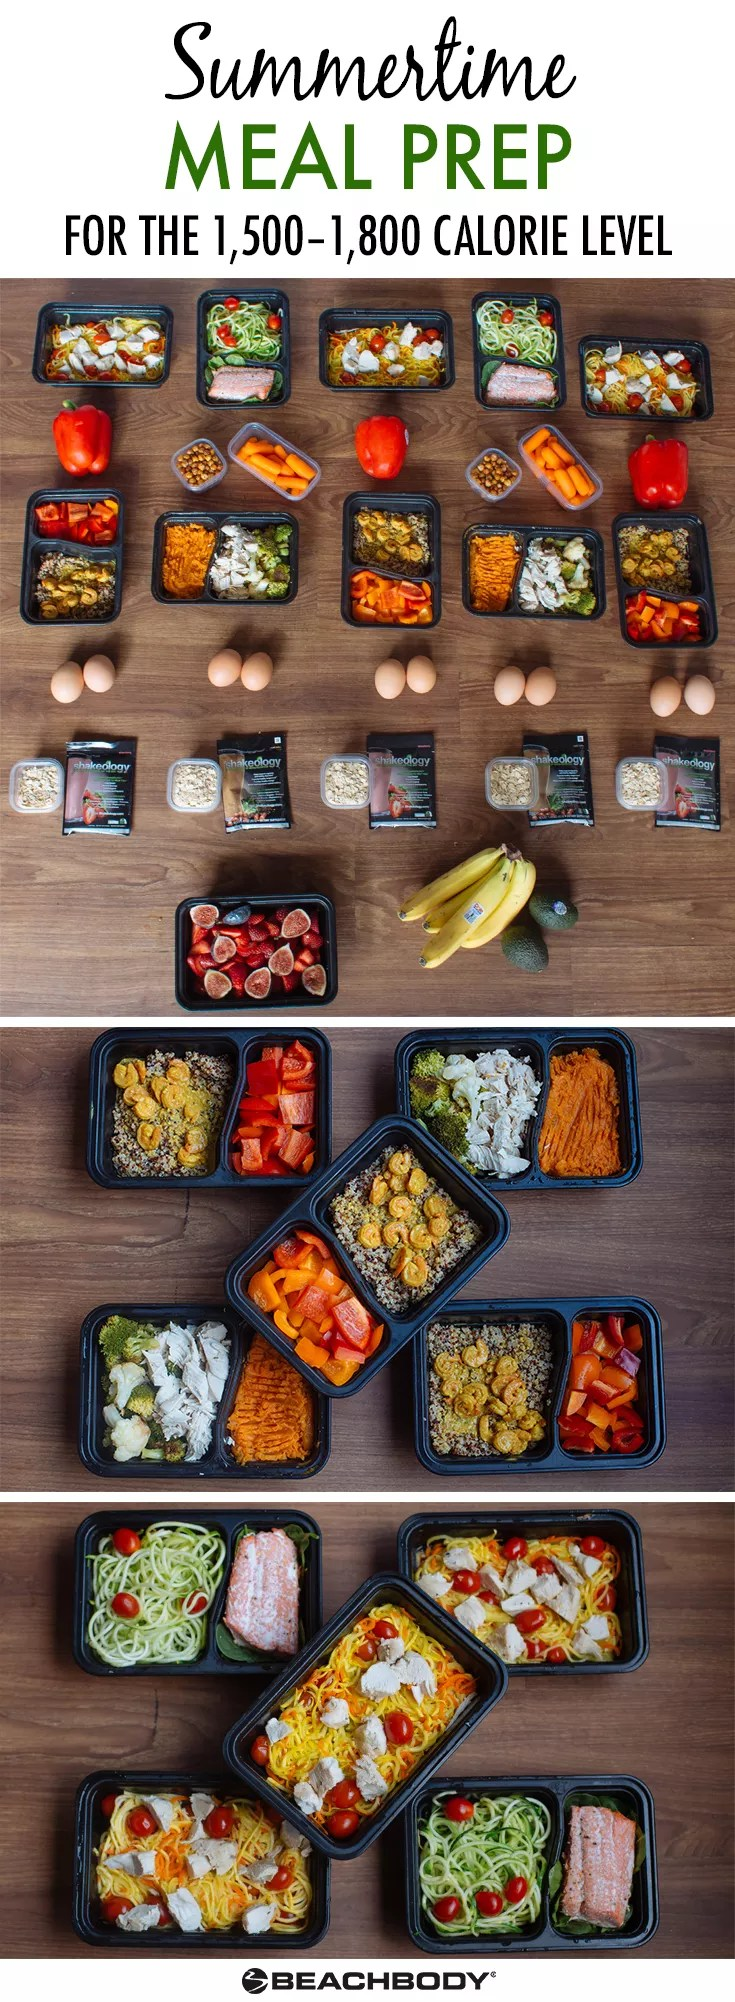 Summertime Meal Prep for the 1,500–1,800 Calorie Level